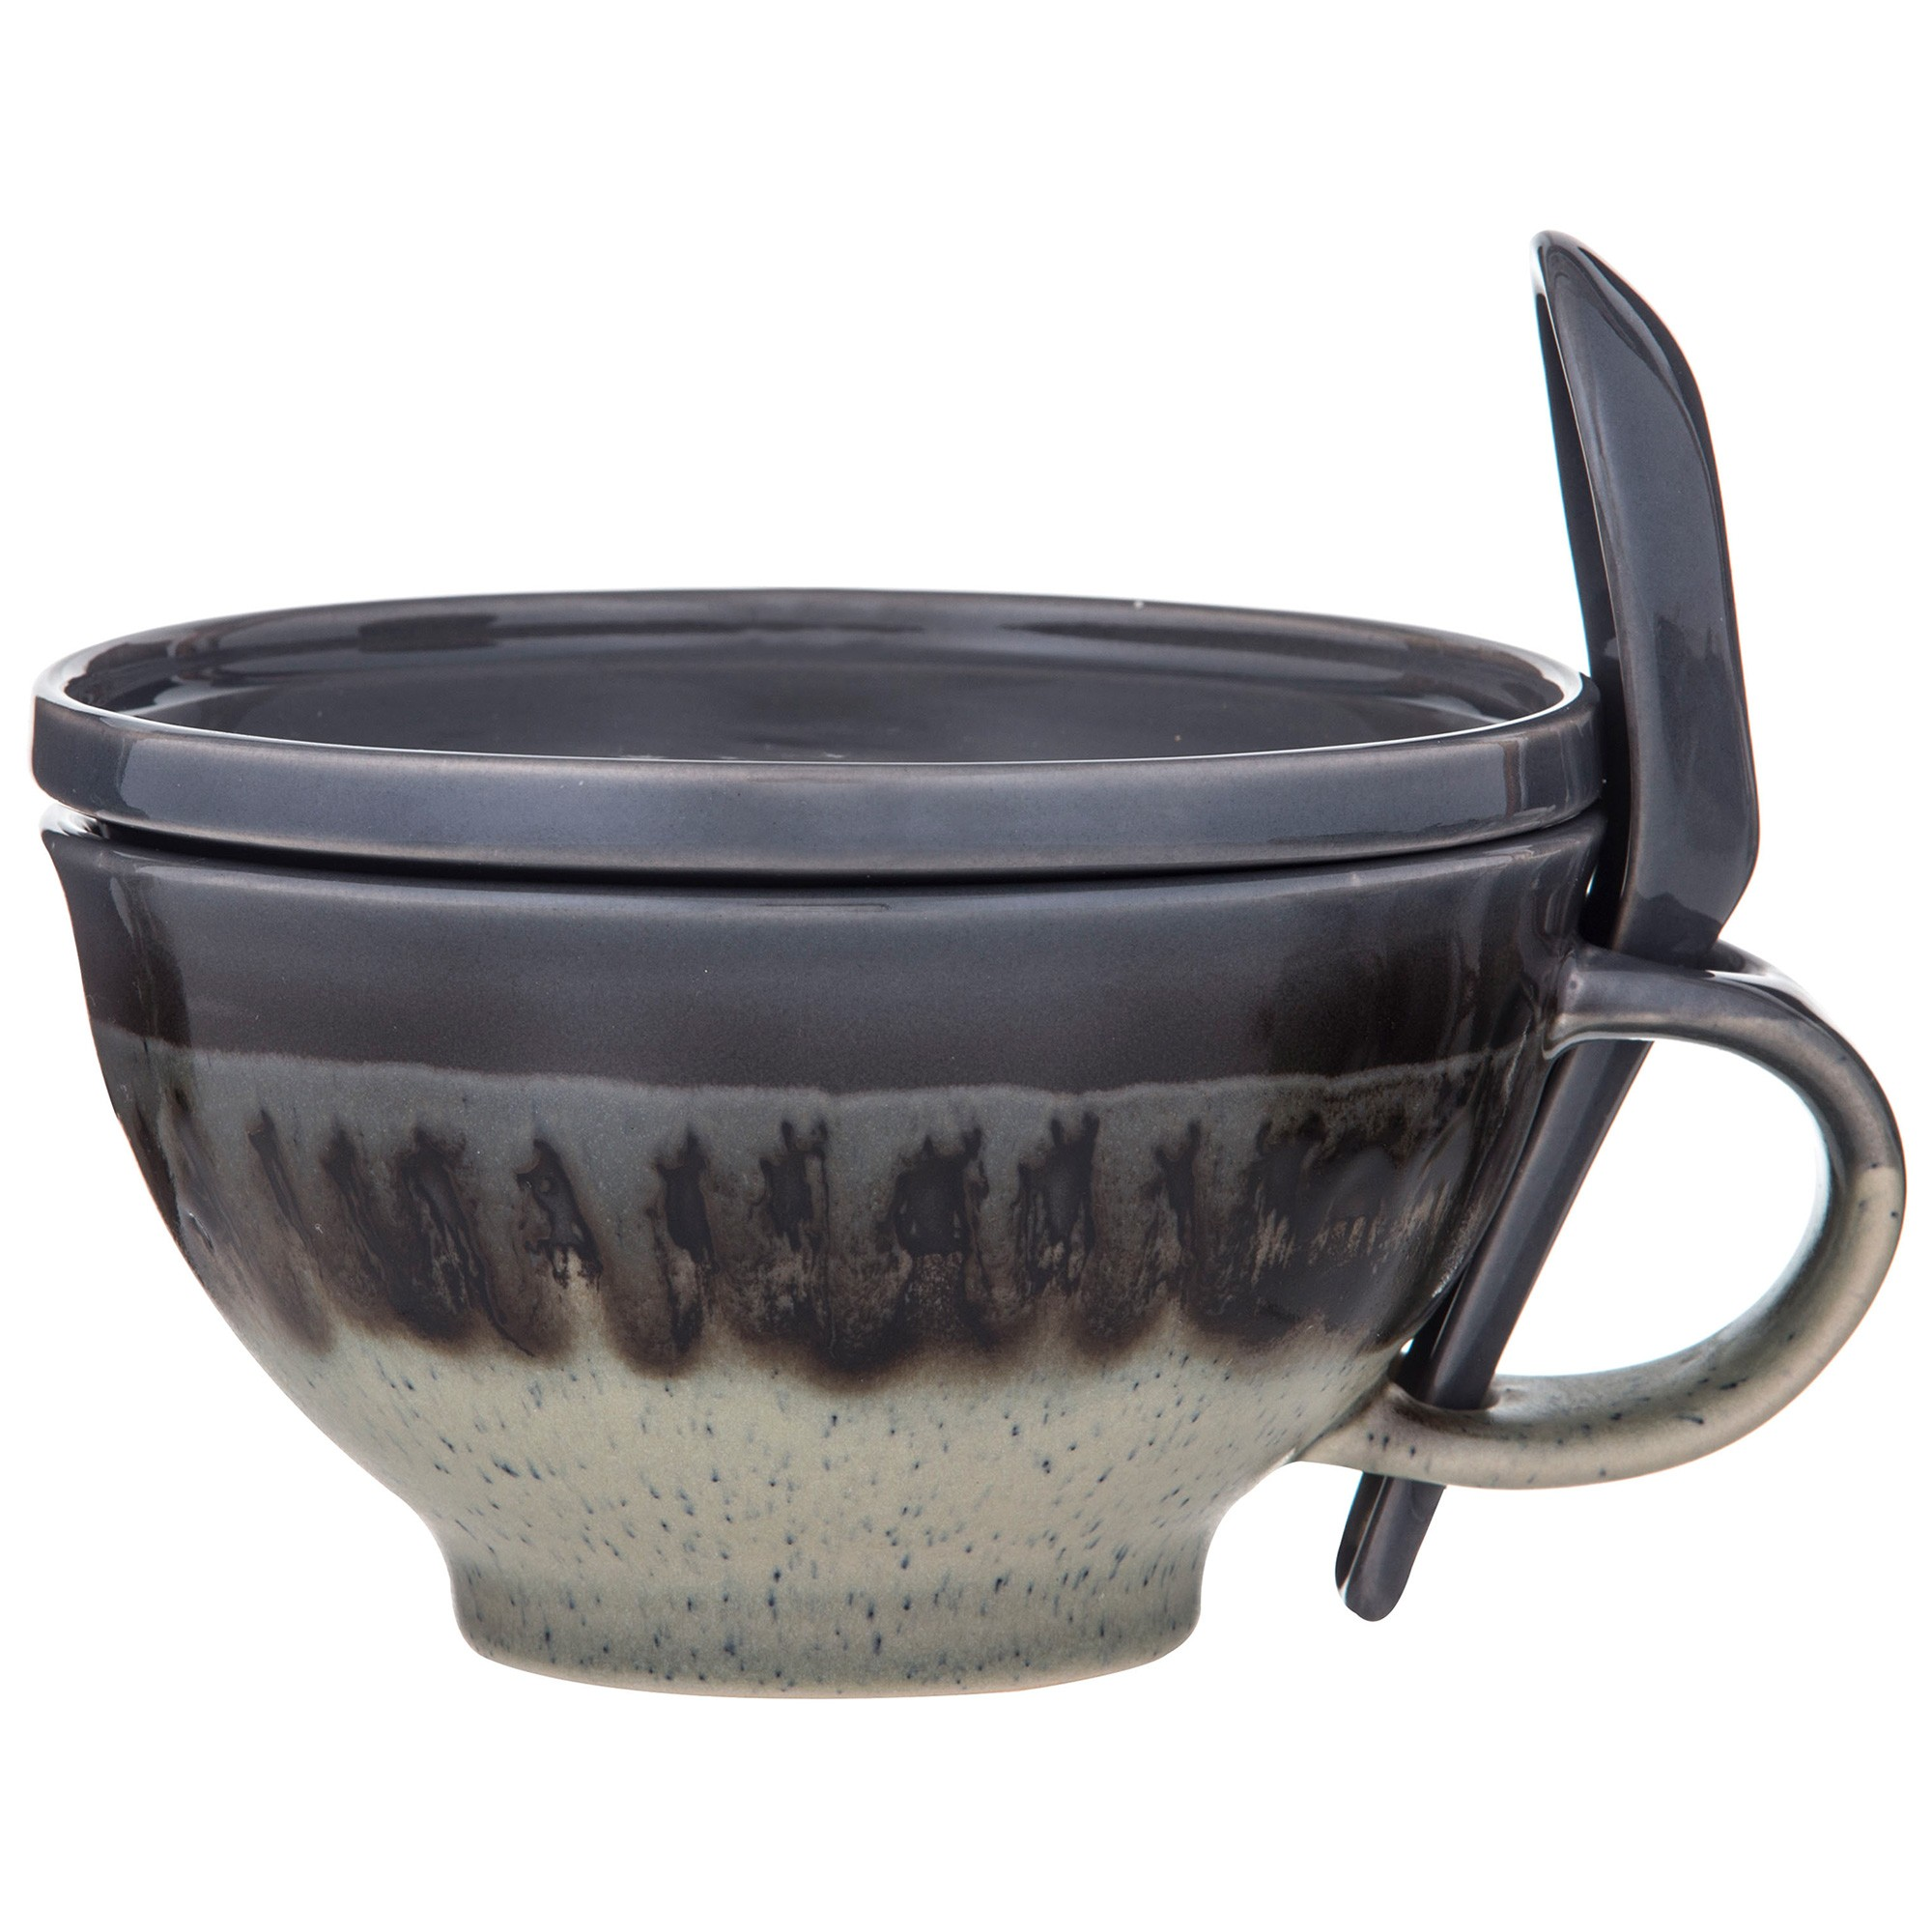 Davis & Waddell Ritual 3 Piece Reactive Glaze Ceramic Soup Mug Set, Charcoal